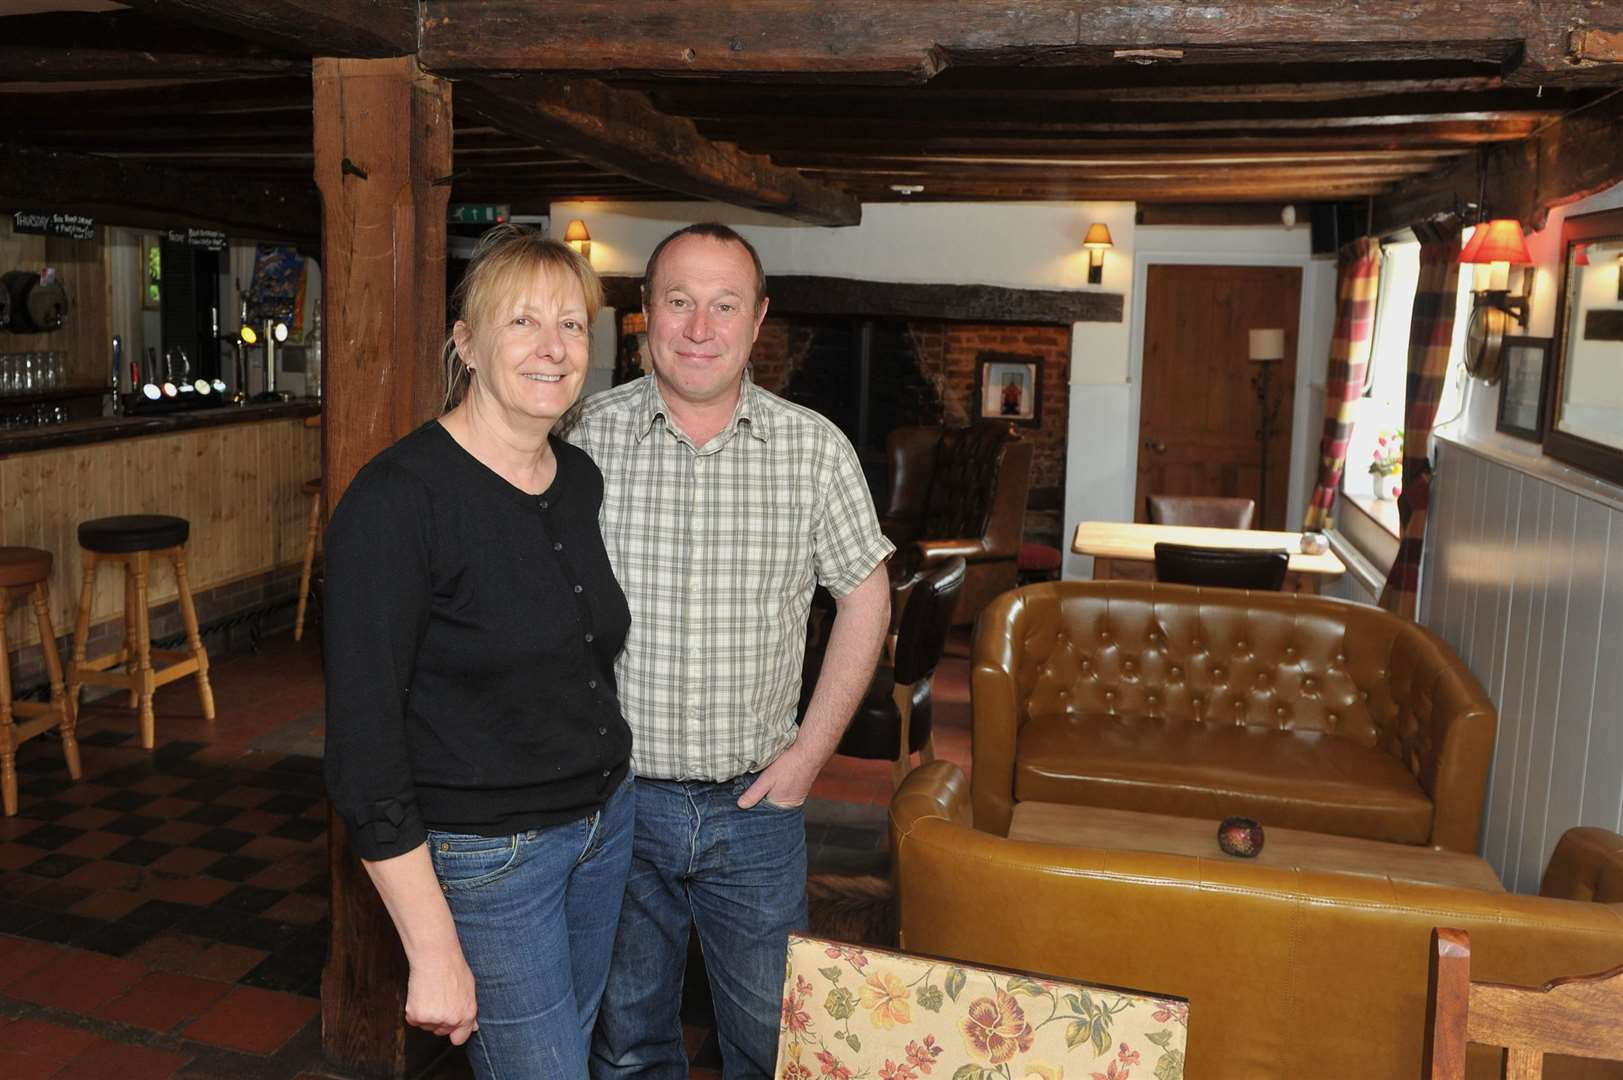 Sue and Chris Smith, the previous owners of The Three Ways pub in Cowlinge, pictured in 2015